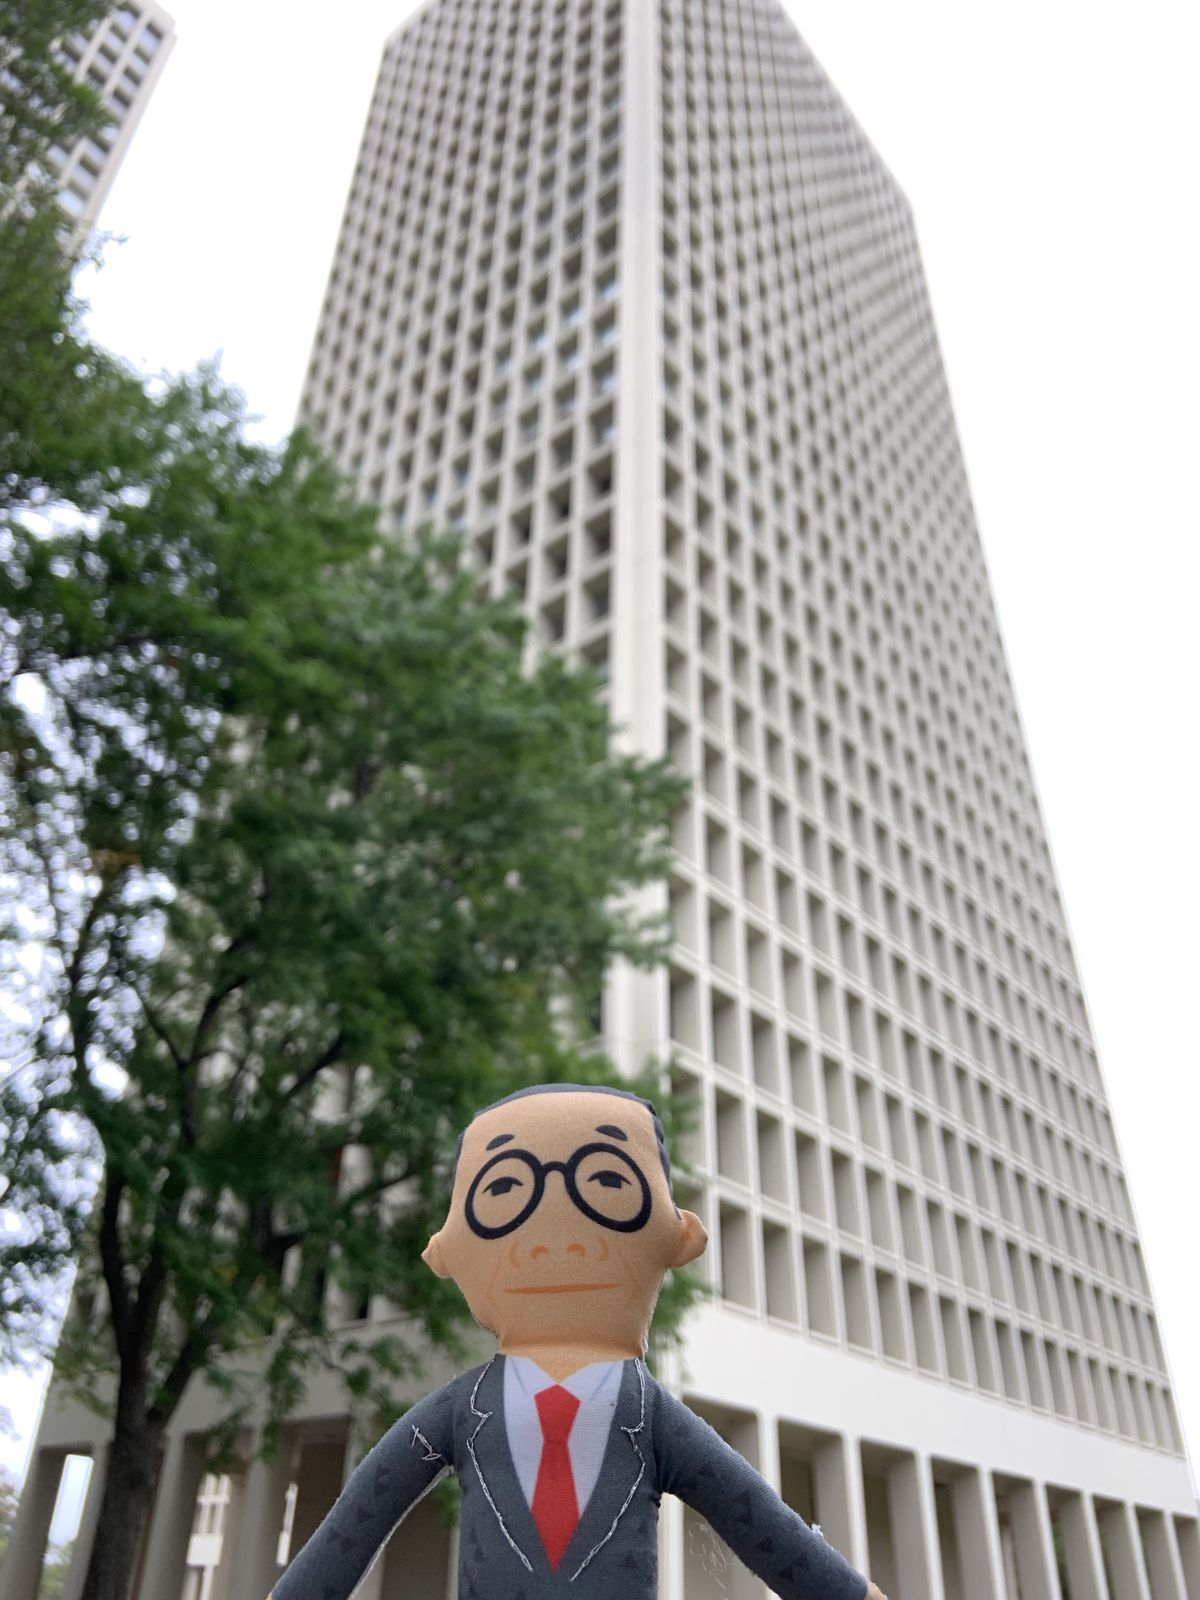 The small doll in front of a skyscraper with waffled facade.